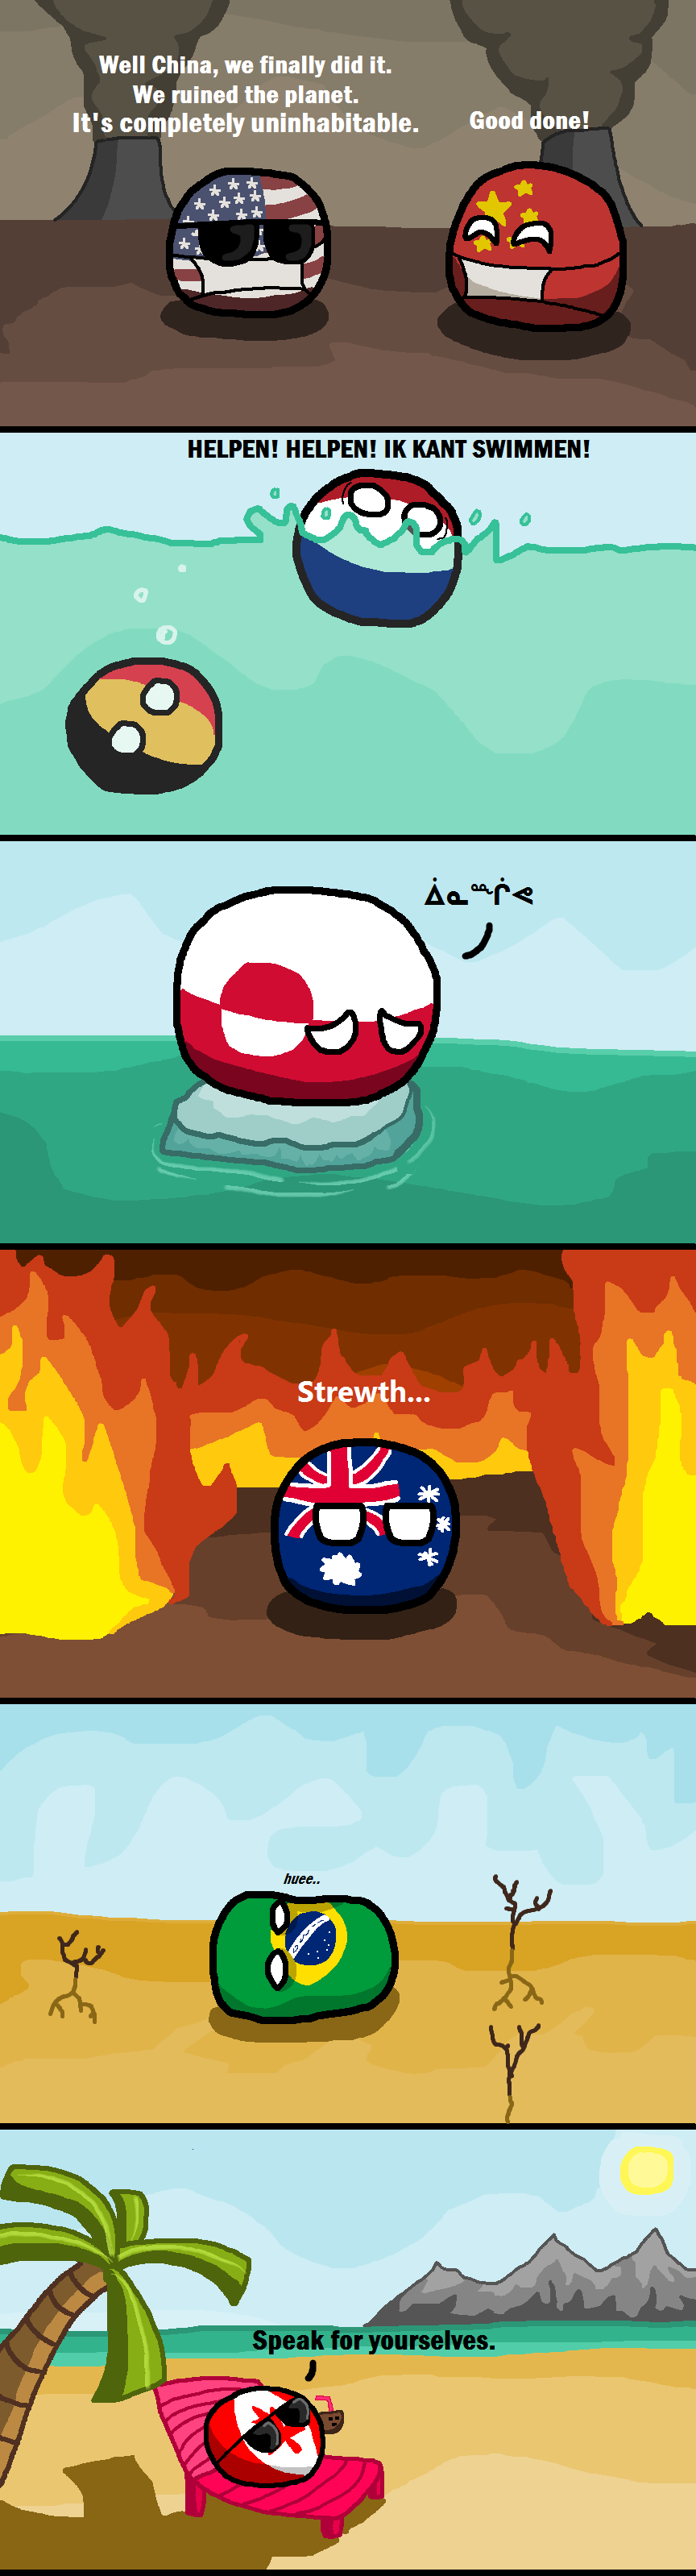 "Global Warming. r/polandball (AaronC14) reddit.com/r/polandball/comments/1z0cua/notsobad/. Well china, we finally did "" We mined the MTM It' s completely uninha"